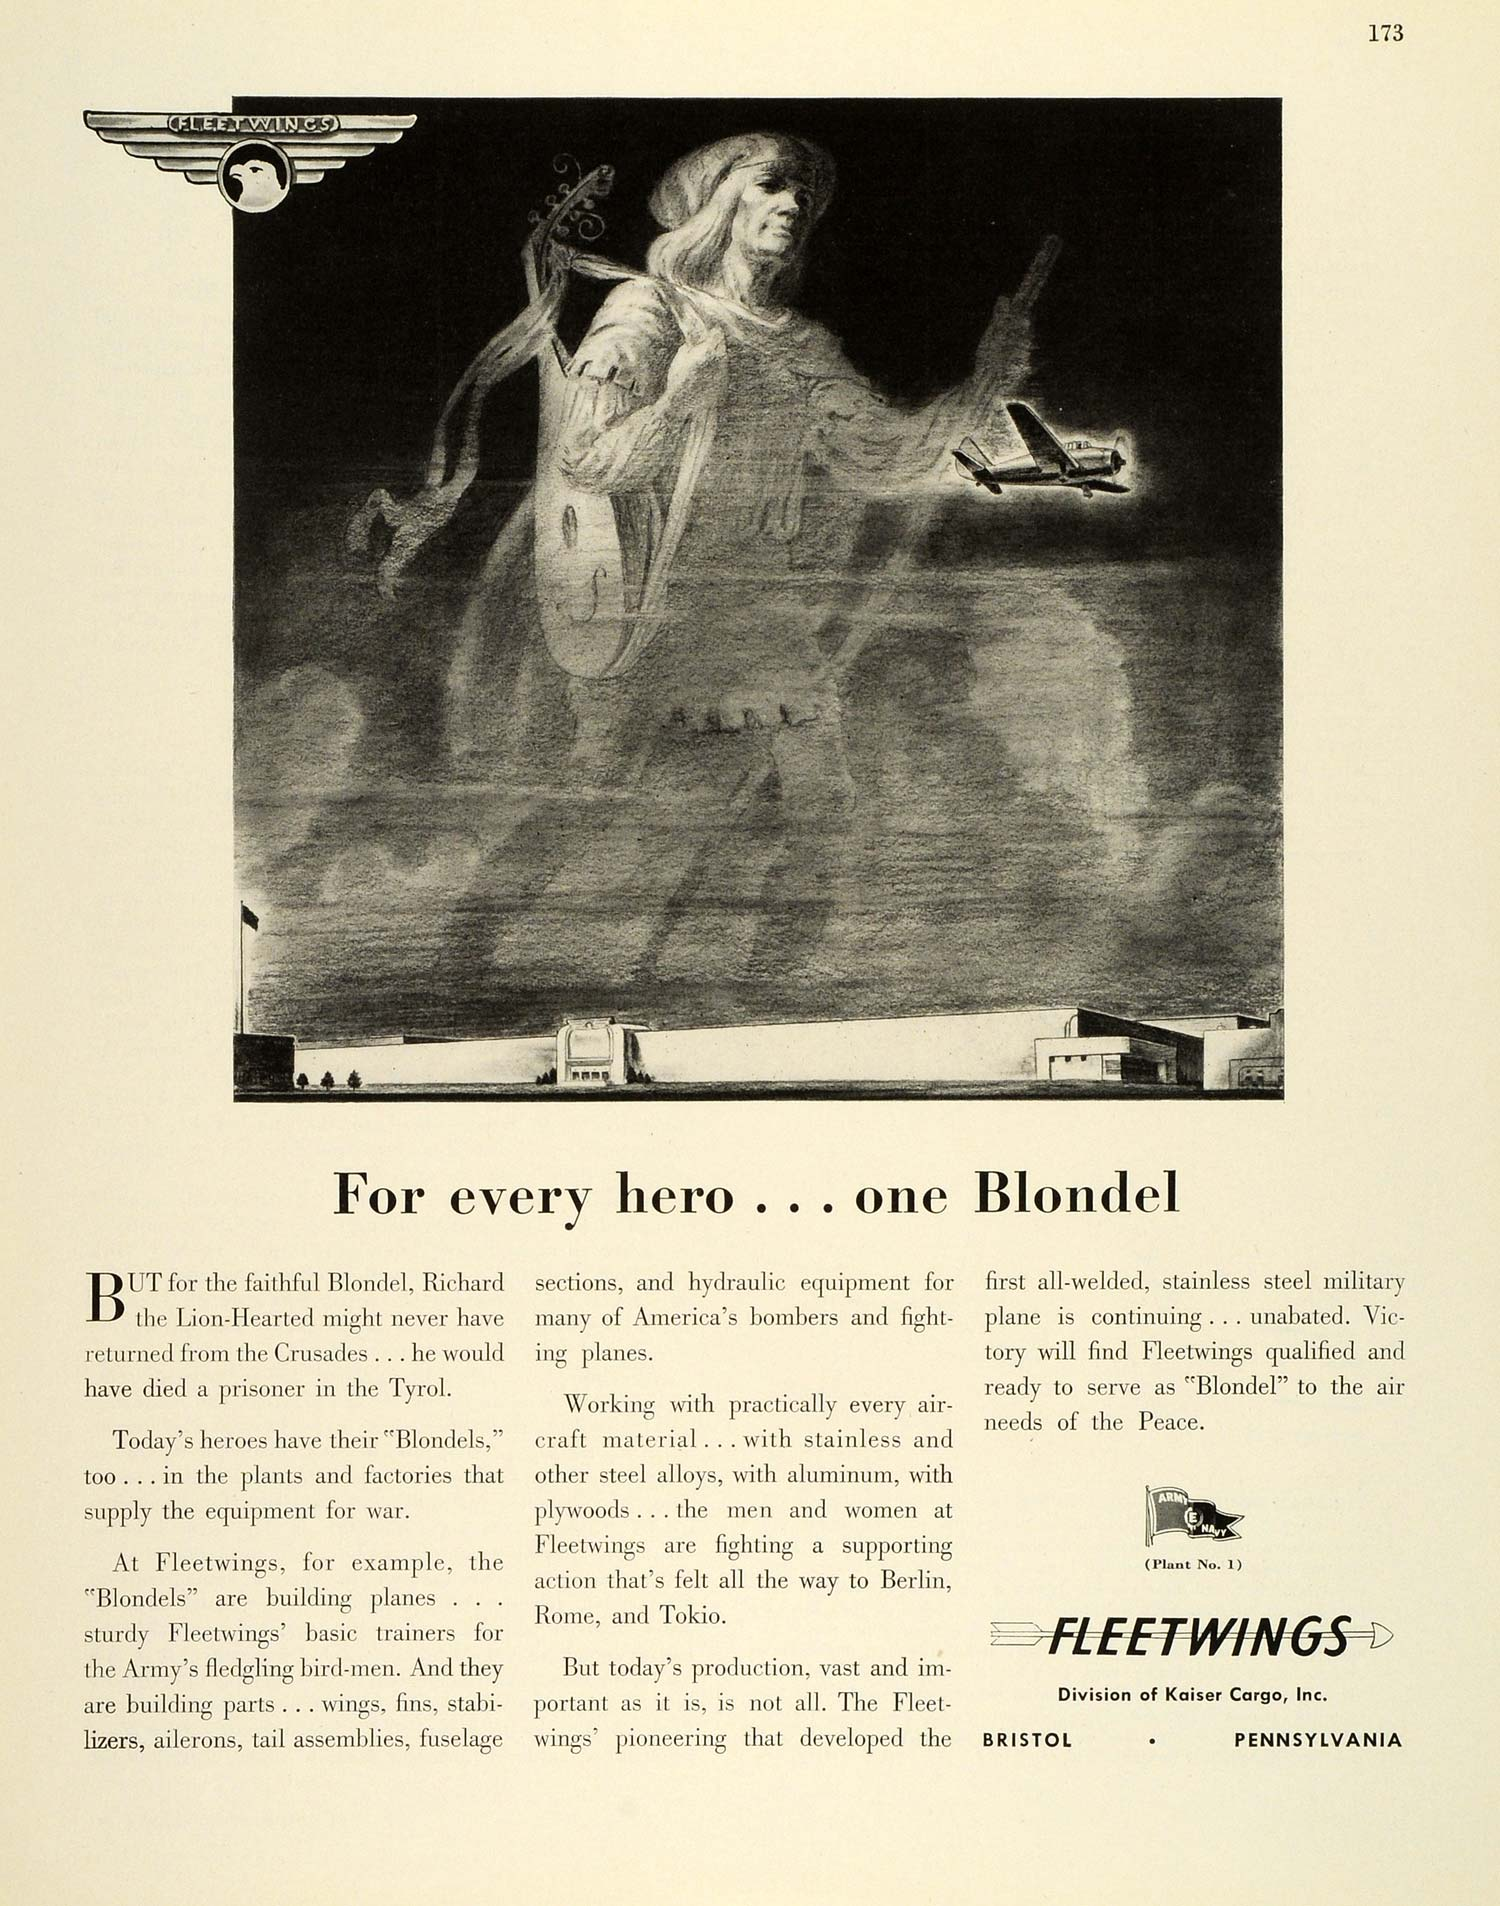 1943 Ad Kaiser Cargo Fleetwings Blondel Aircraft Airplanes WWII War FZ6